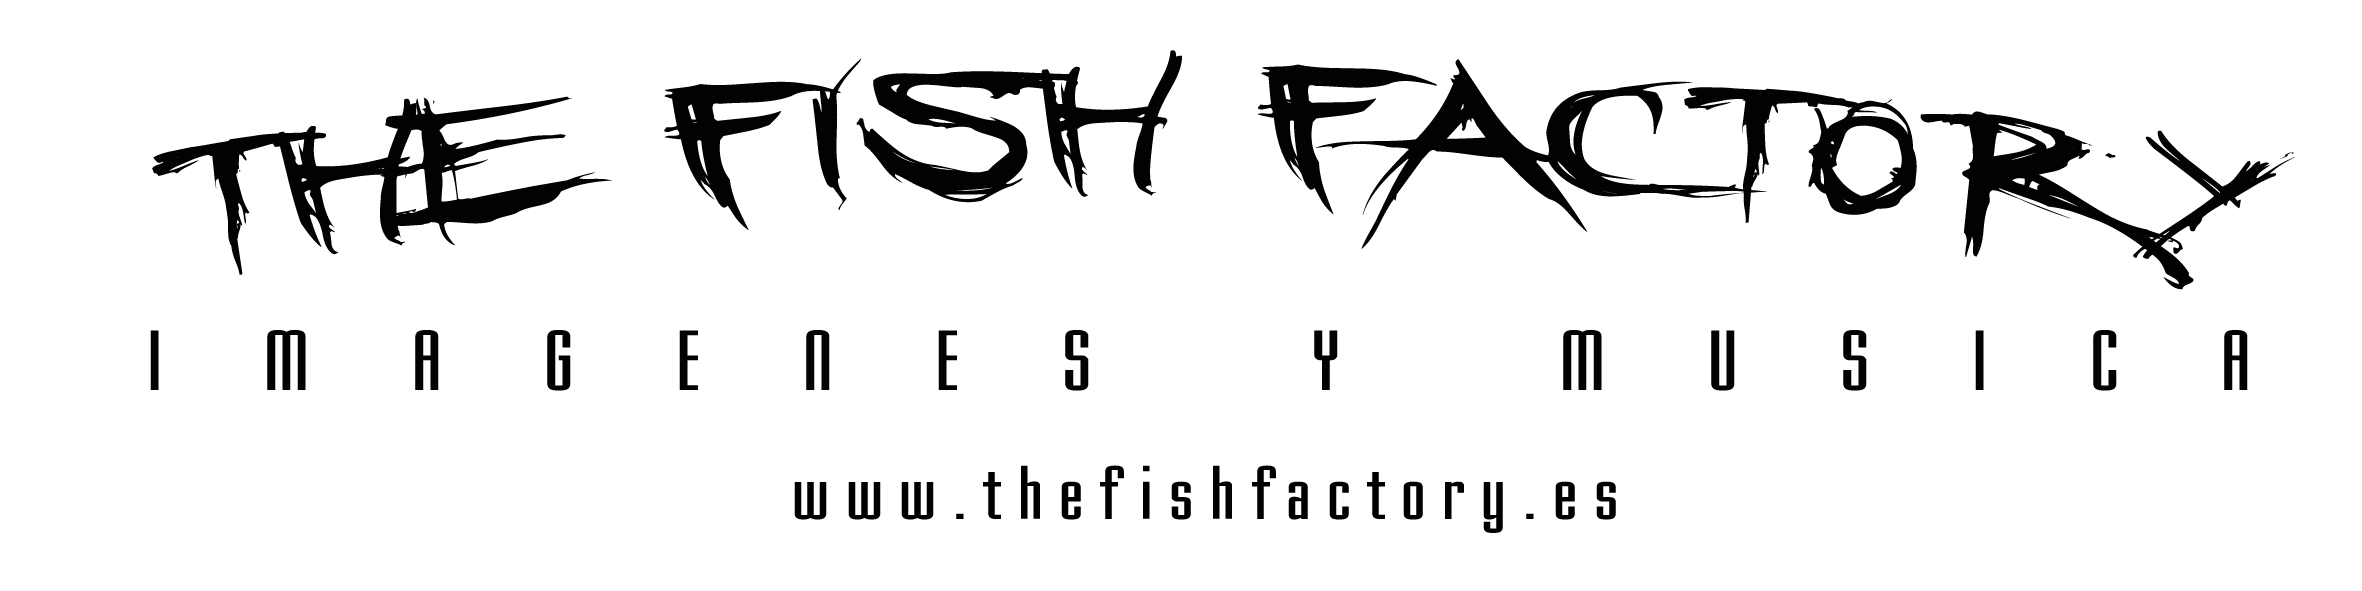 Ganadores del concurso The Fish Factory